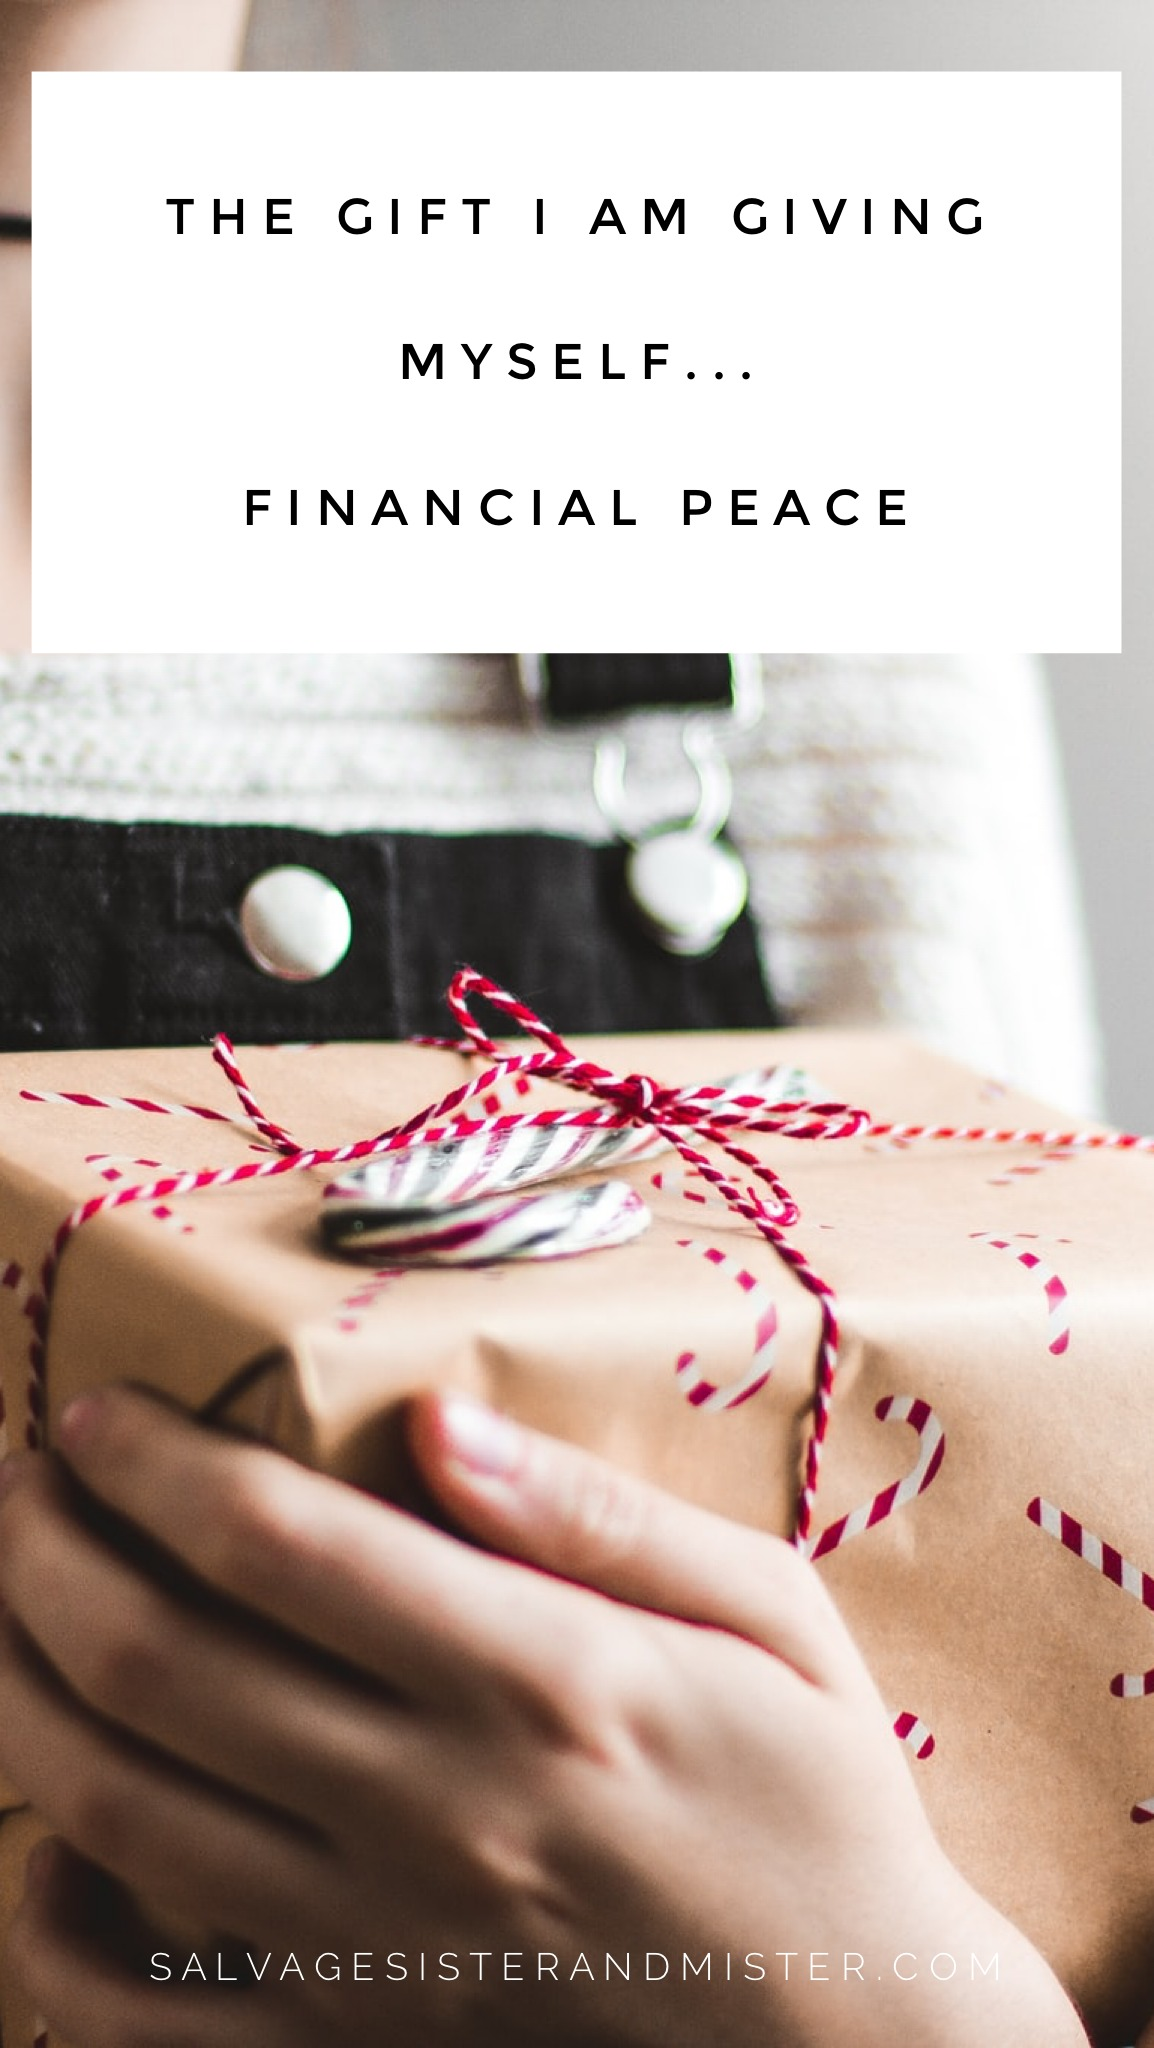 Yes, I am worth it. This is the one thing they won't be advertising, but is the gift I am giving myself financial peace. Tips on giving from the heart and not just to spend. Living debt free. Staying on budget-money management. Article found on salvagesisterandmister.com